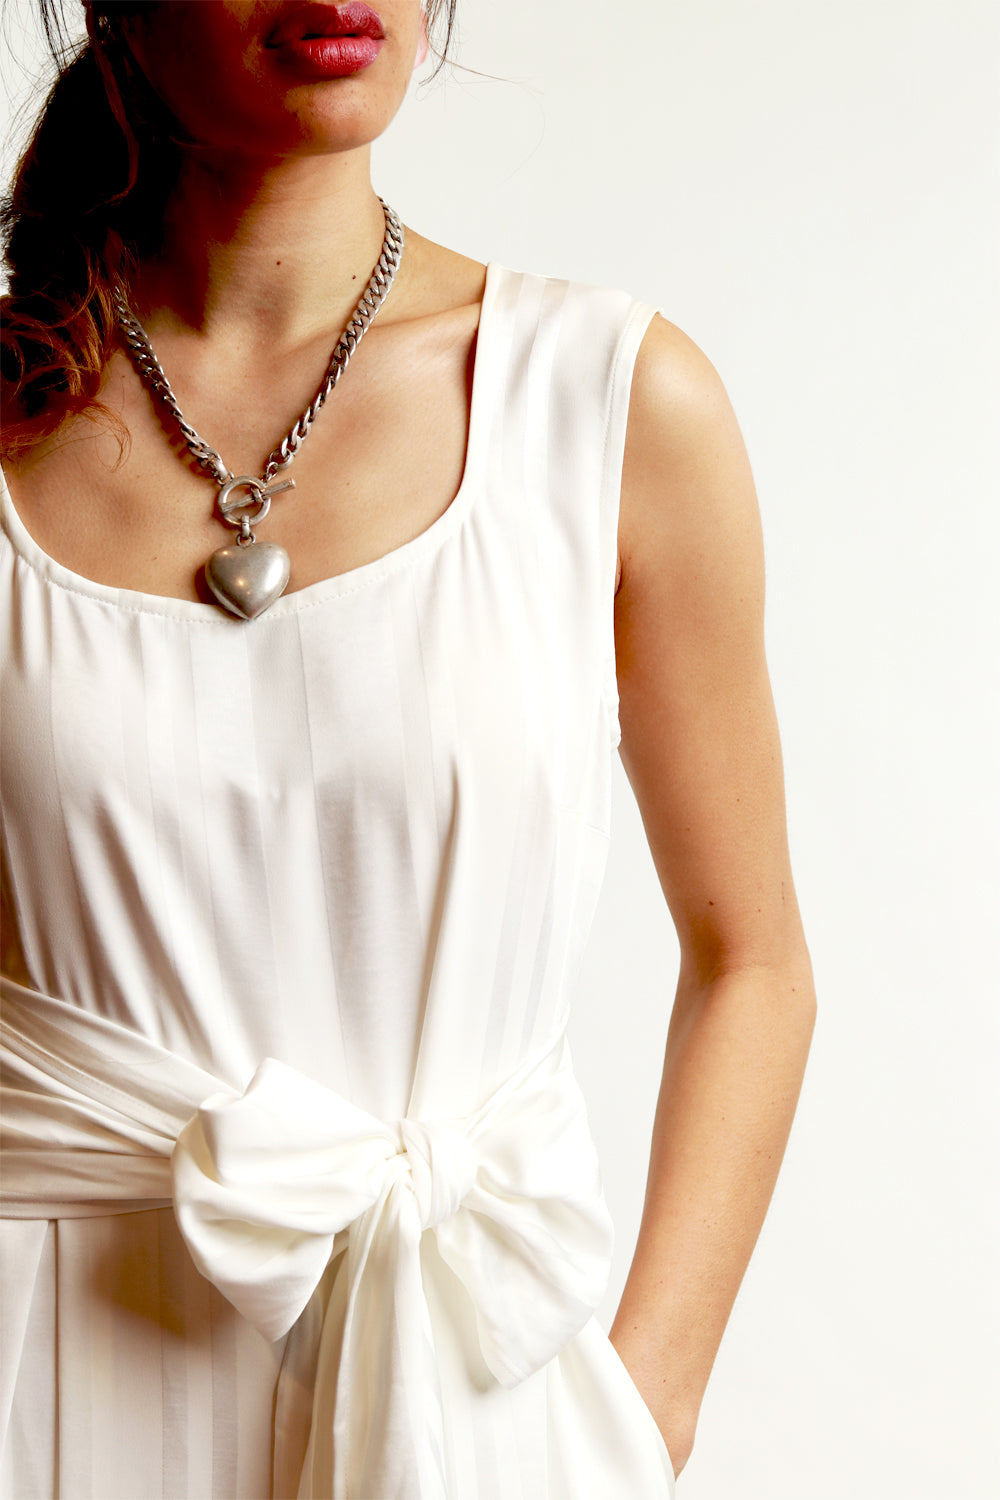 Lucy Lana Jumpsuit White - SALE